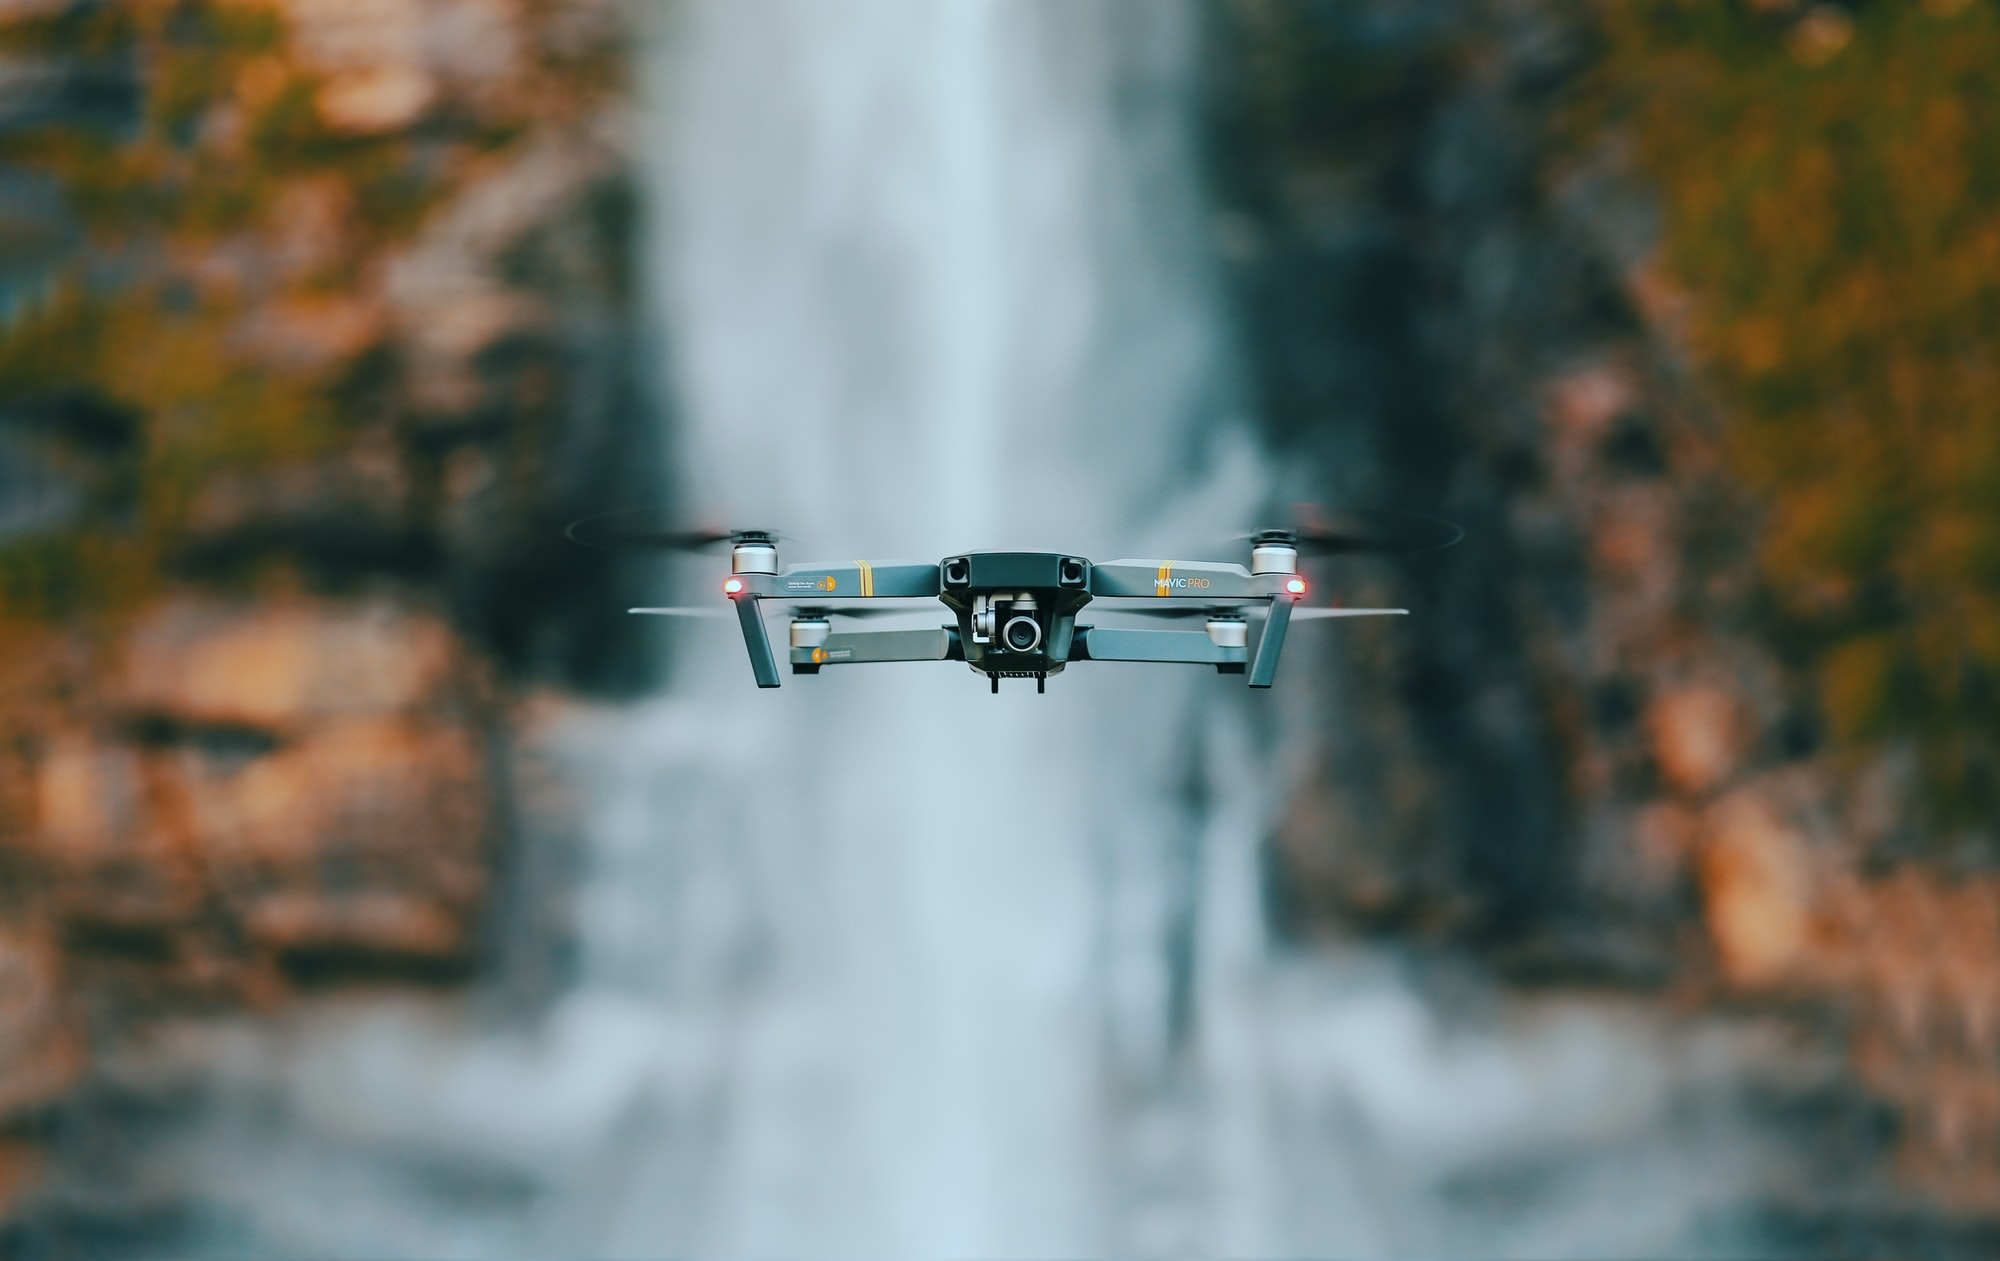 How To Do A Vision Calibration For DJI Mavic Pro Using DJI Assistant 2 On MacOSX—Solutions